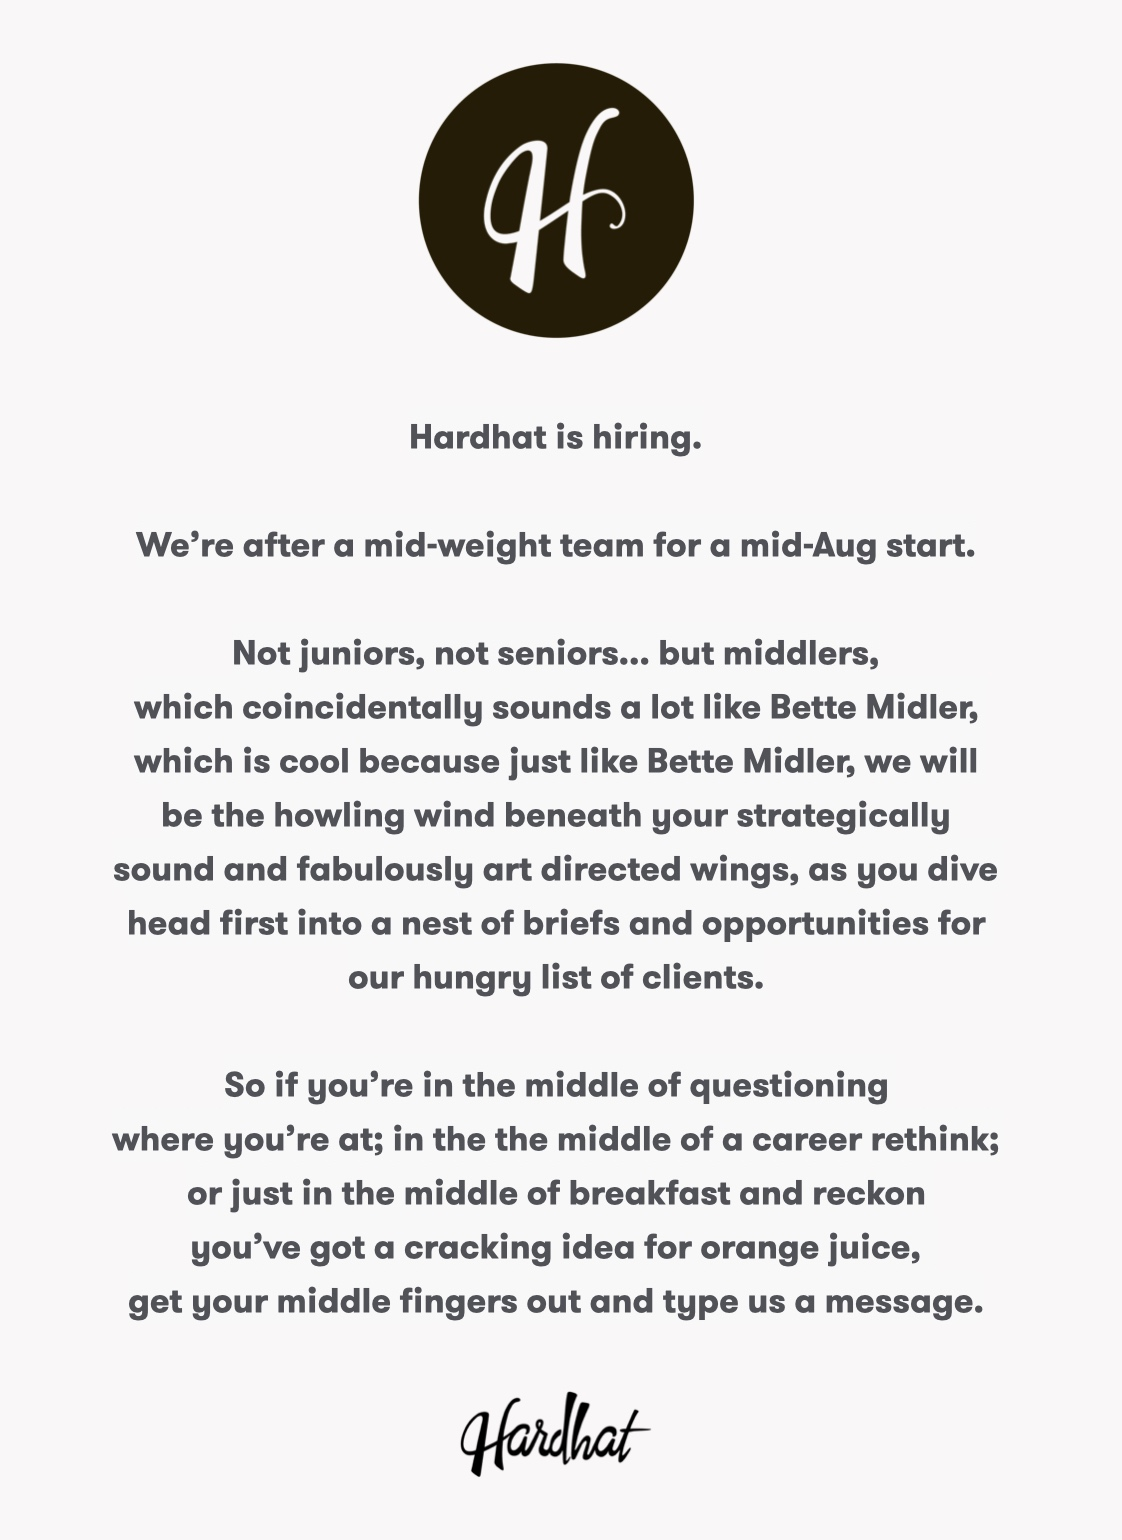 Independent Melbourne agency Hardhat channels Bette Midler in humorous recruitment ad